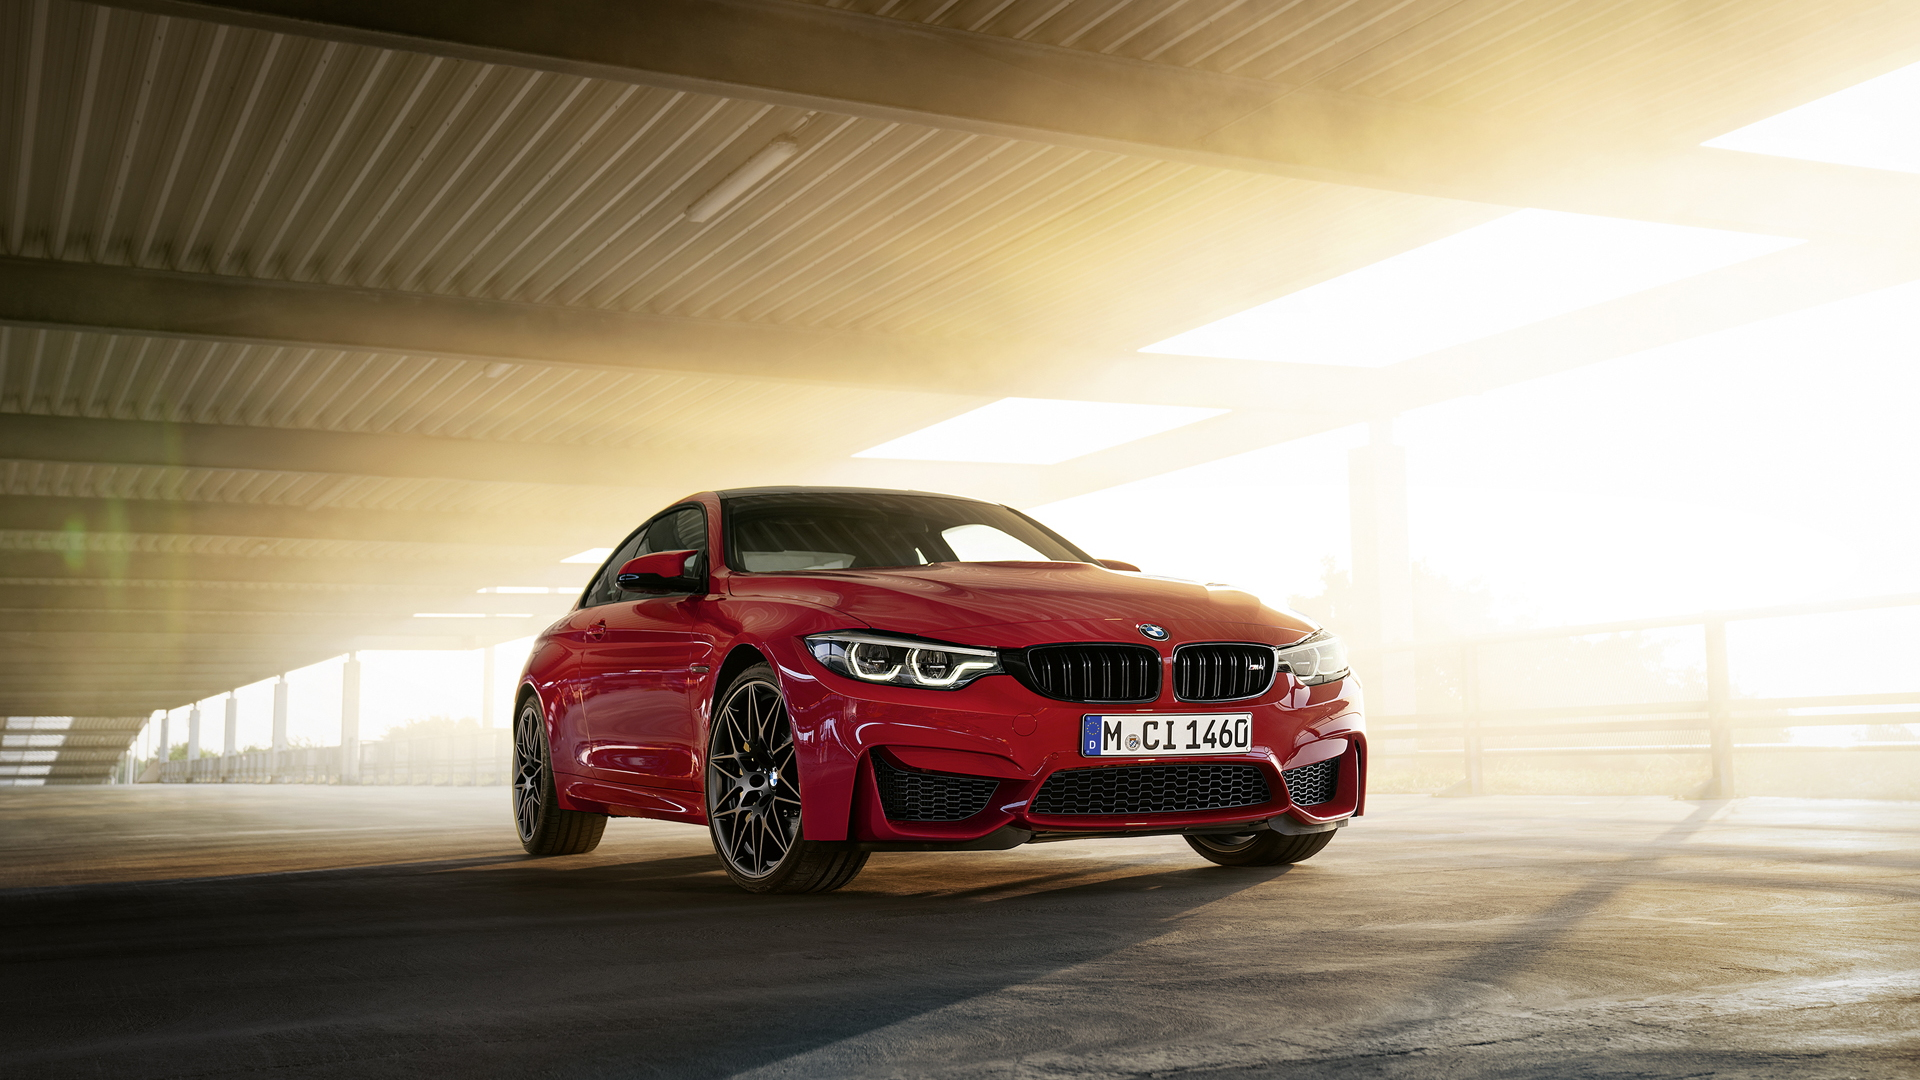 BMW M4 Edition ///M Heritage revealed - only 750 units